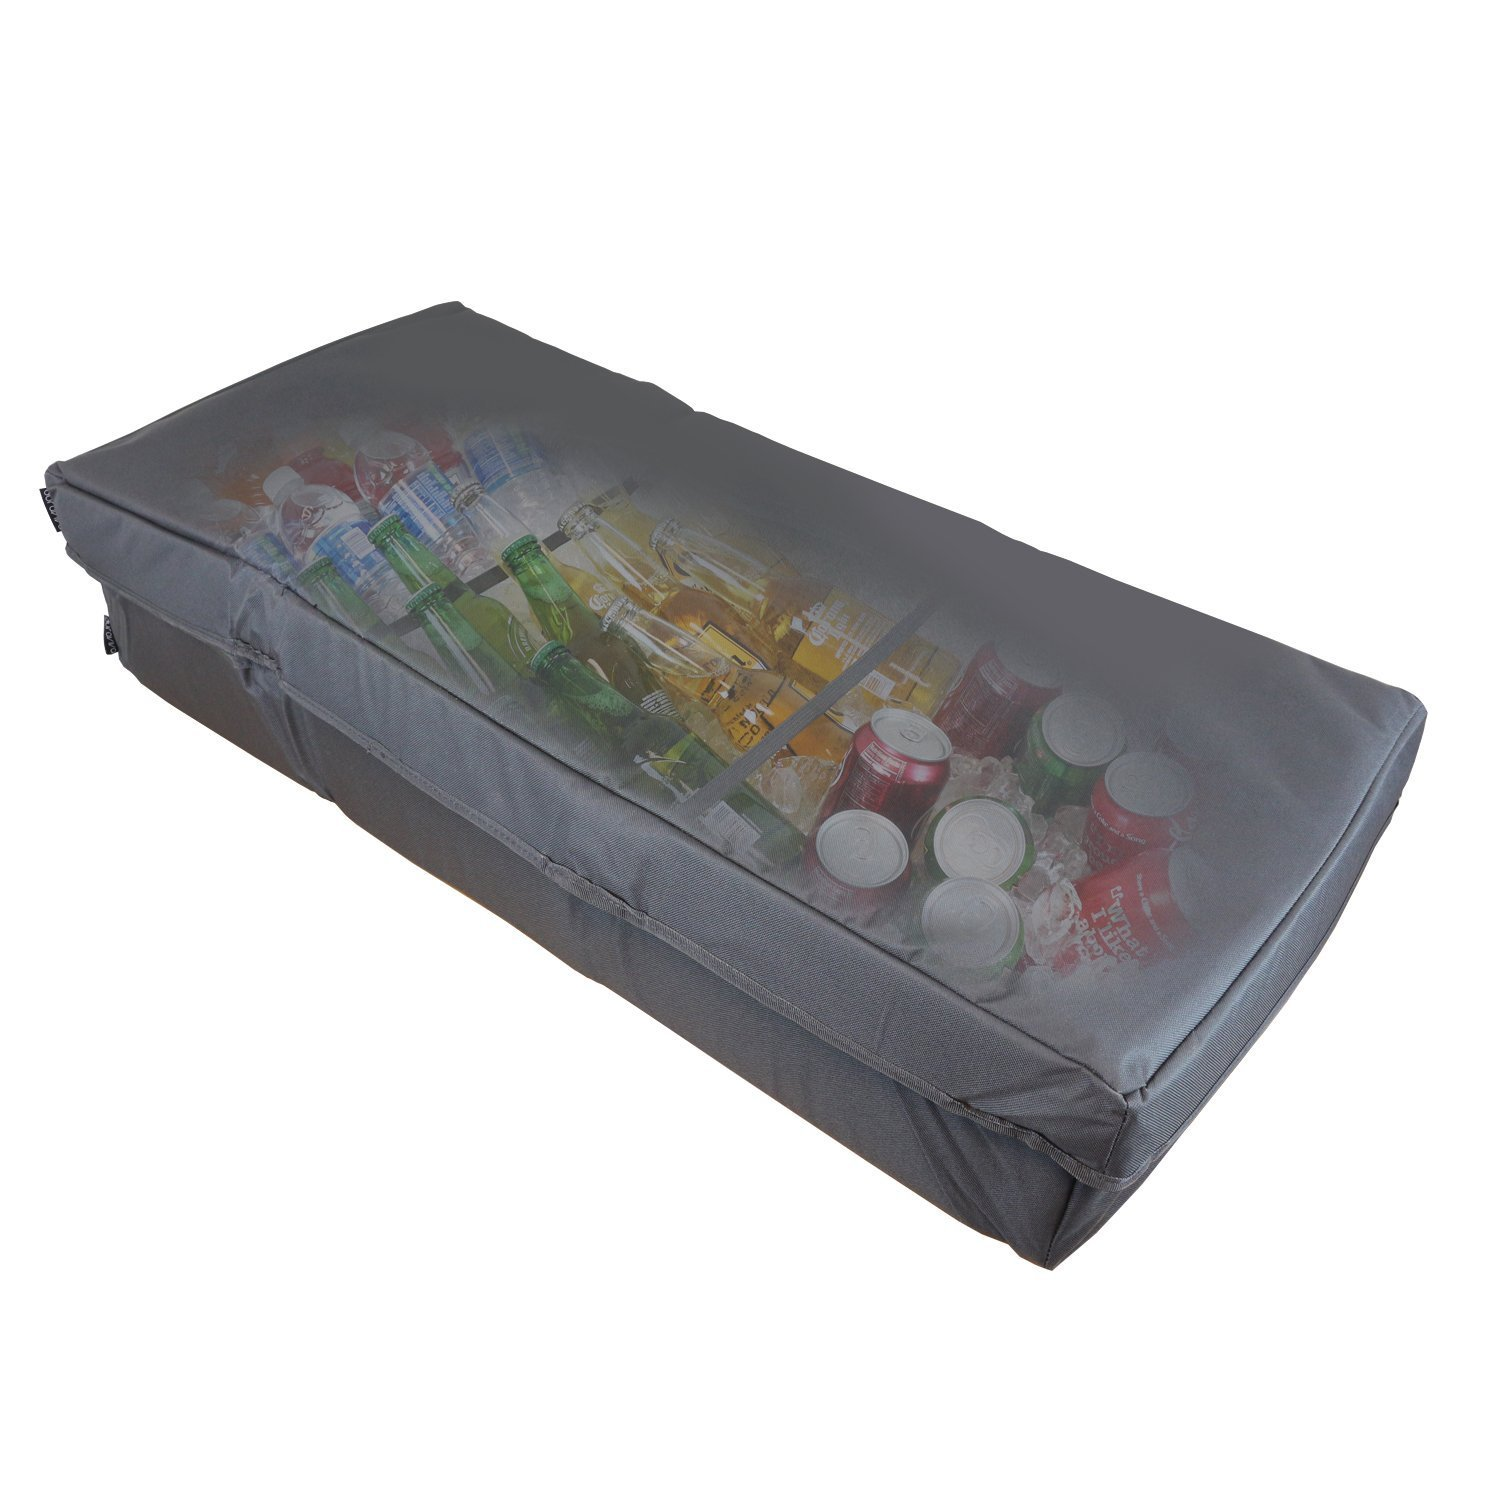 Duraviva Insulated Food & Drink Party Serving Tray Portable Foldable Cooler for Beverages, Buffet, Picnic, BBQ, Salad Seafood Bar by Duraviva (Image #3)